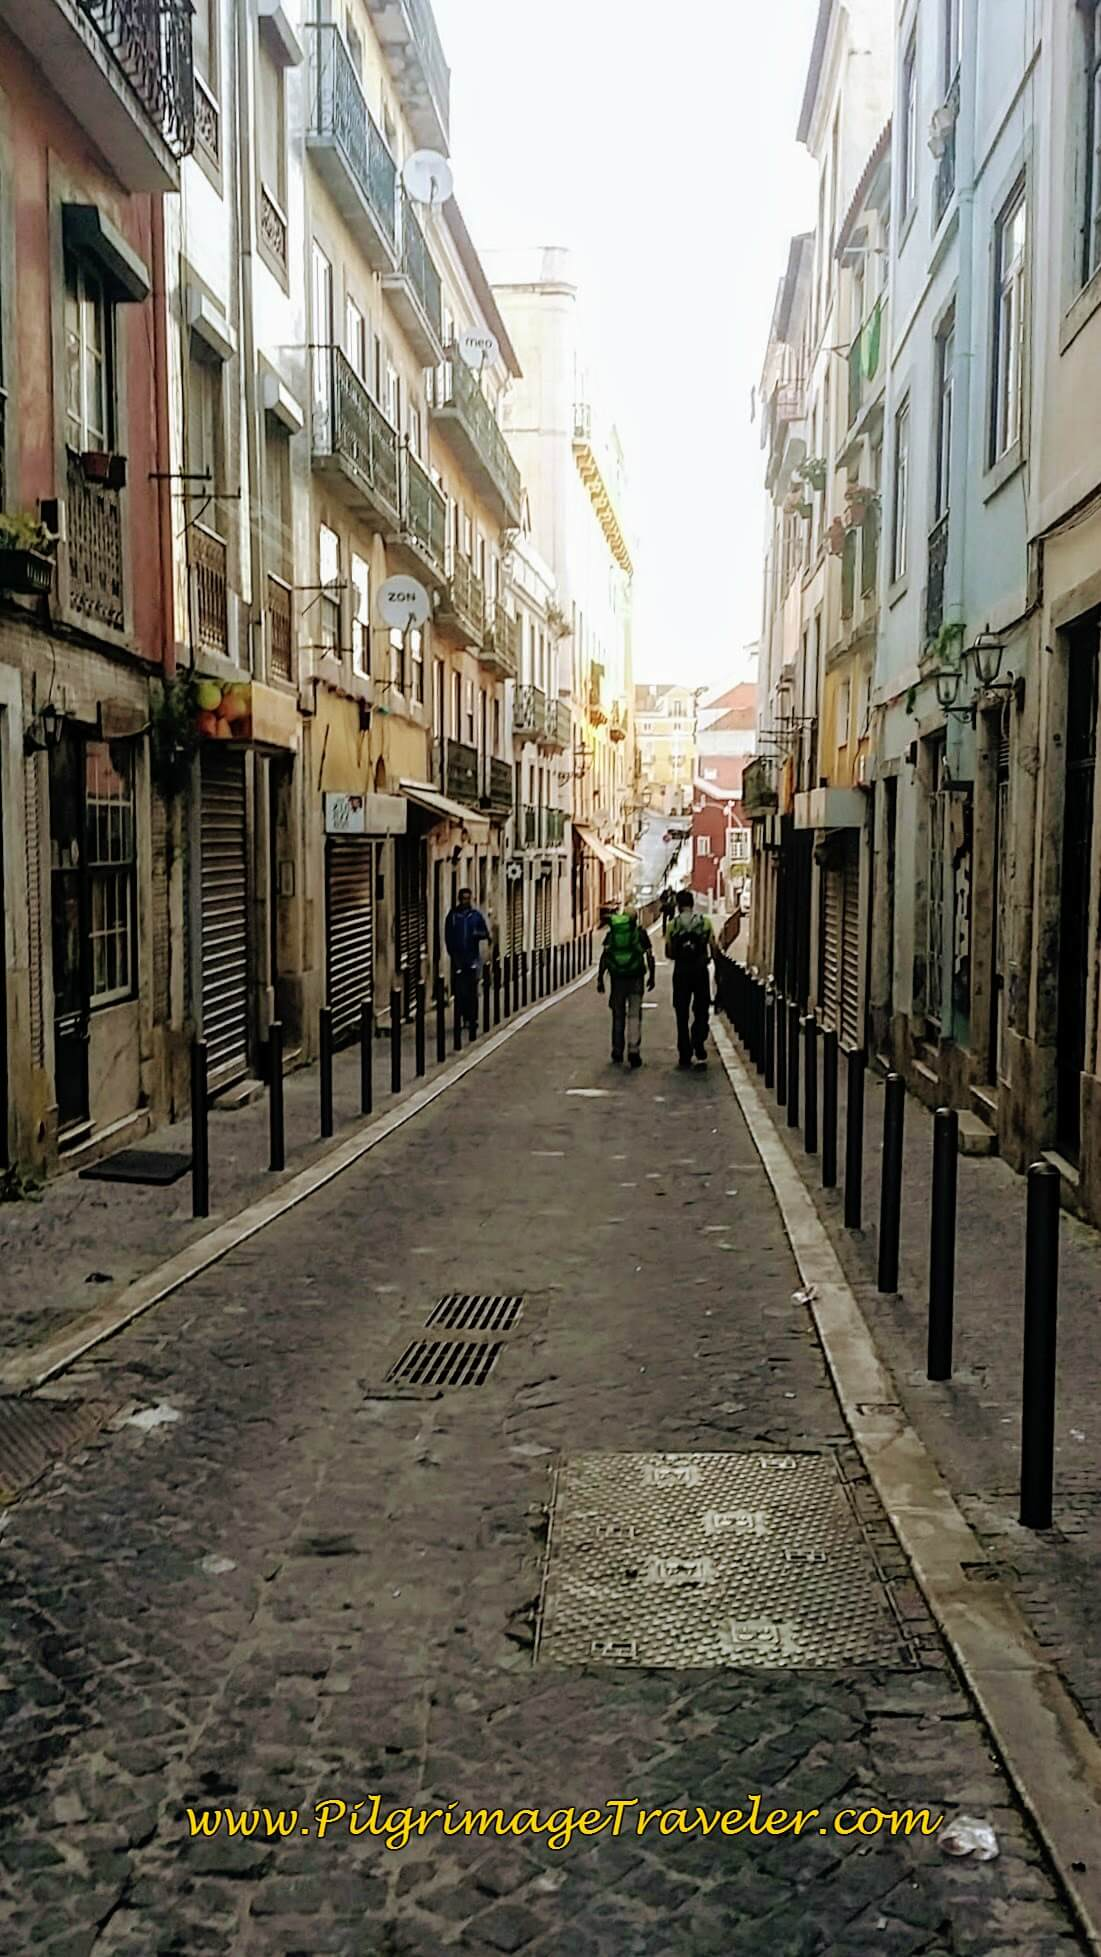 Rua dos Remédios, Alfama district in Lisbon, Portugal